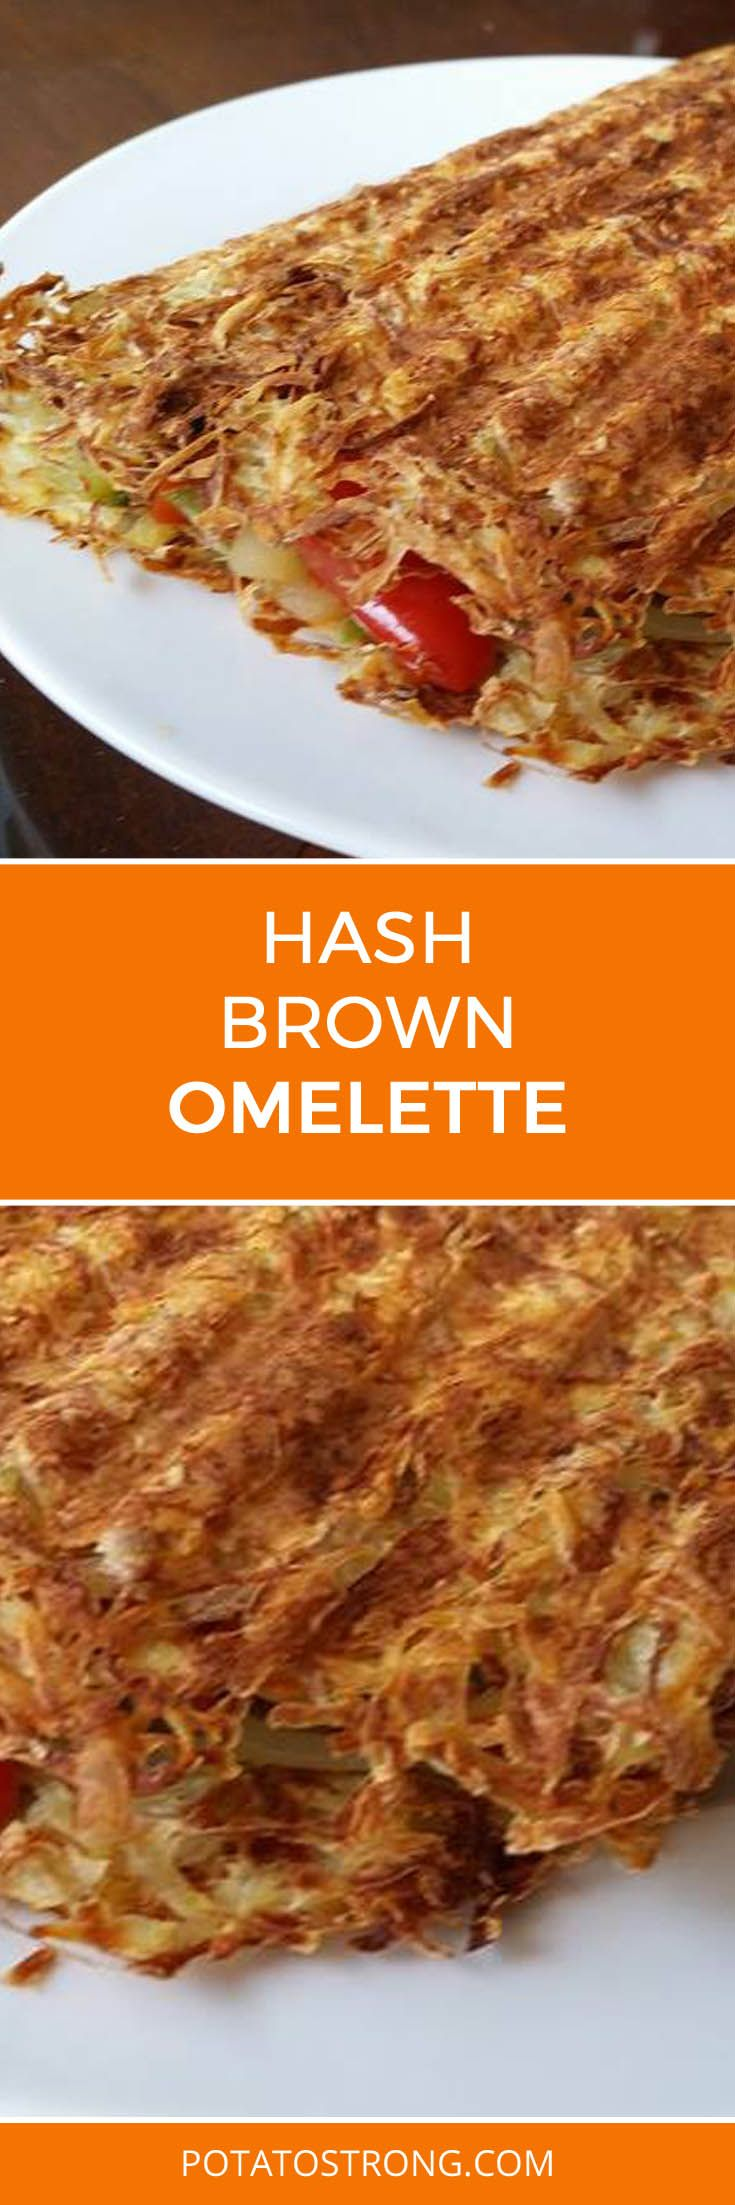 Hash brown omelette